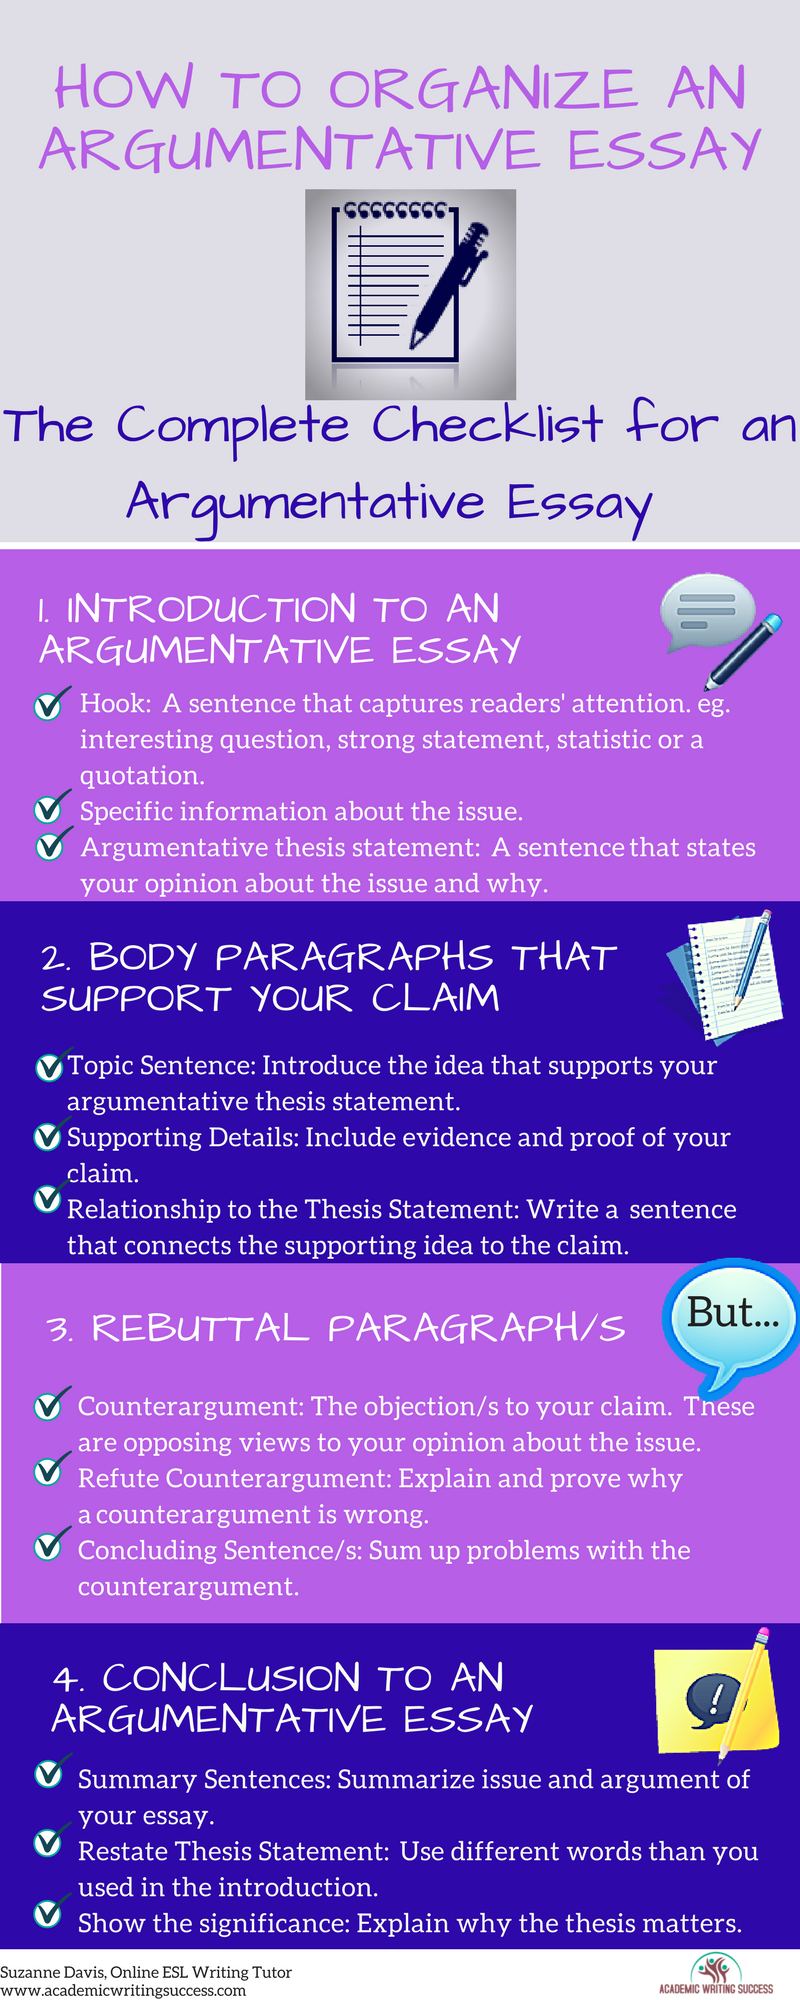 Science Fiction Essay  Proposal Essay Topics also How To Write A Proposal Essay Outline The Ultimate Guide On How To Organize A Bold Argumentative  Persuasive Essay Topics For High School Students